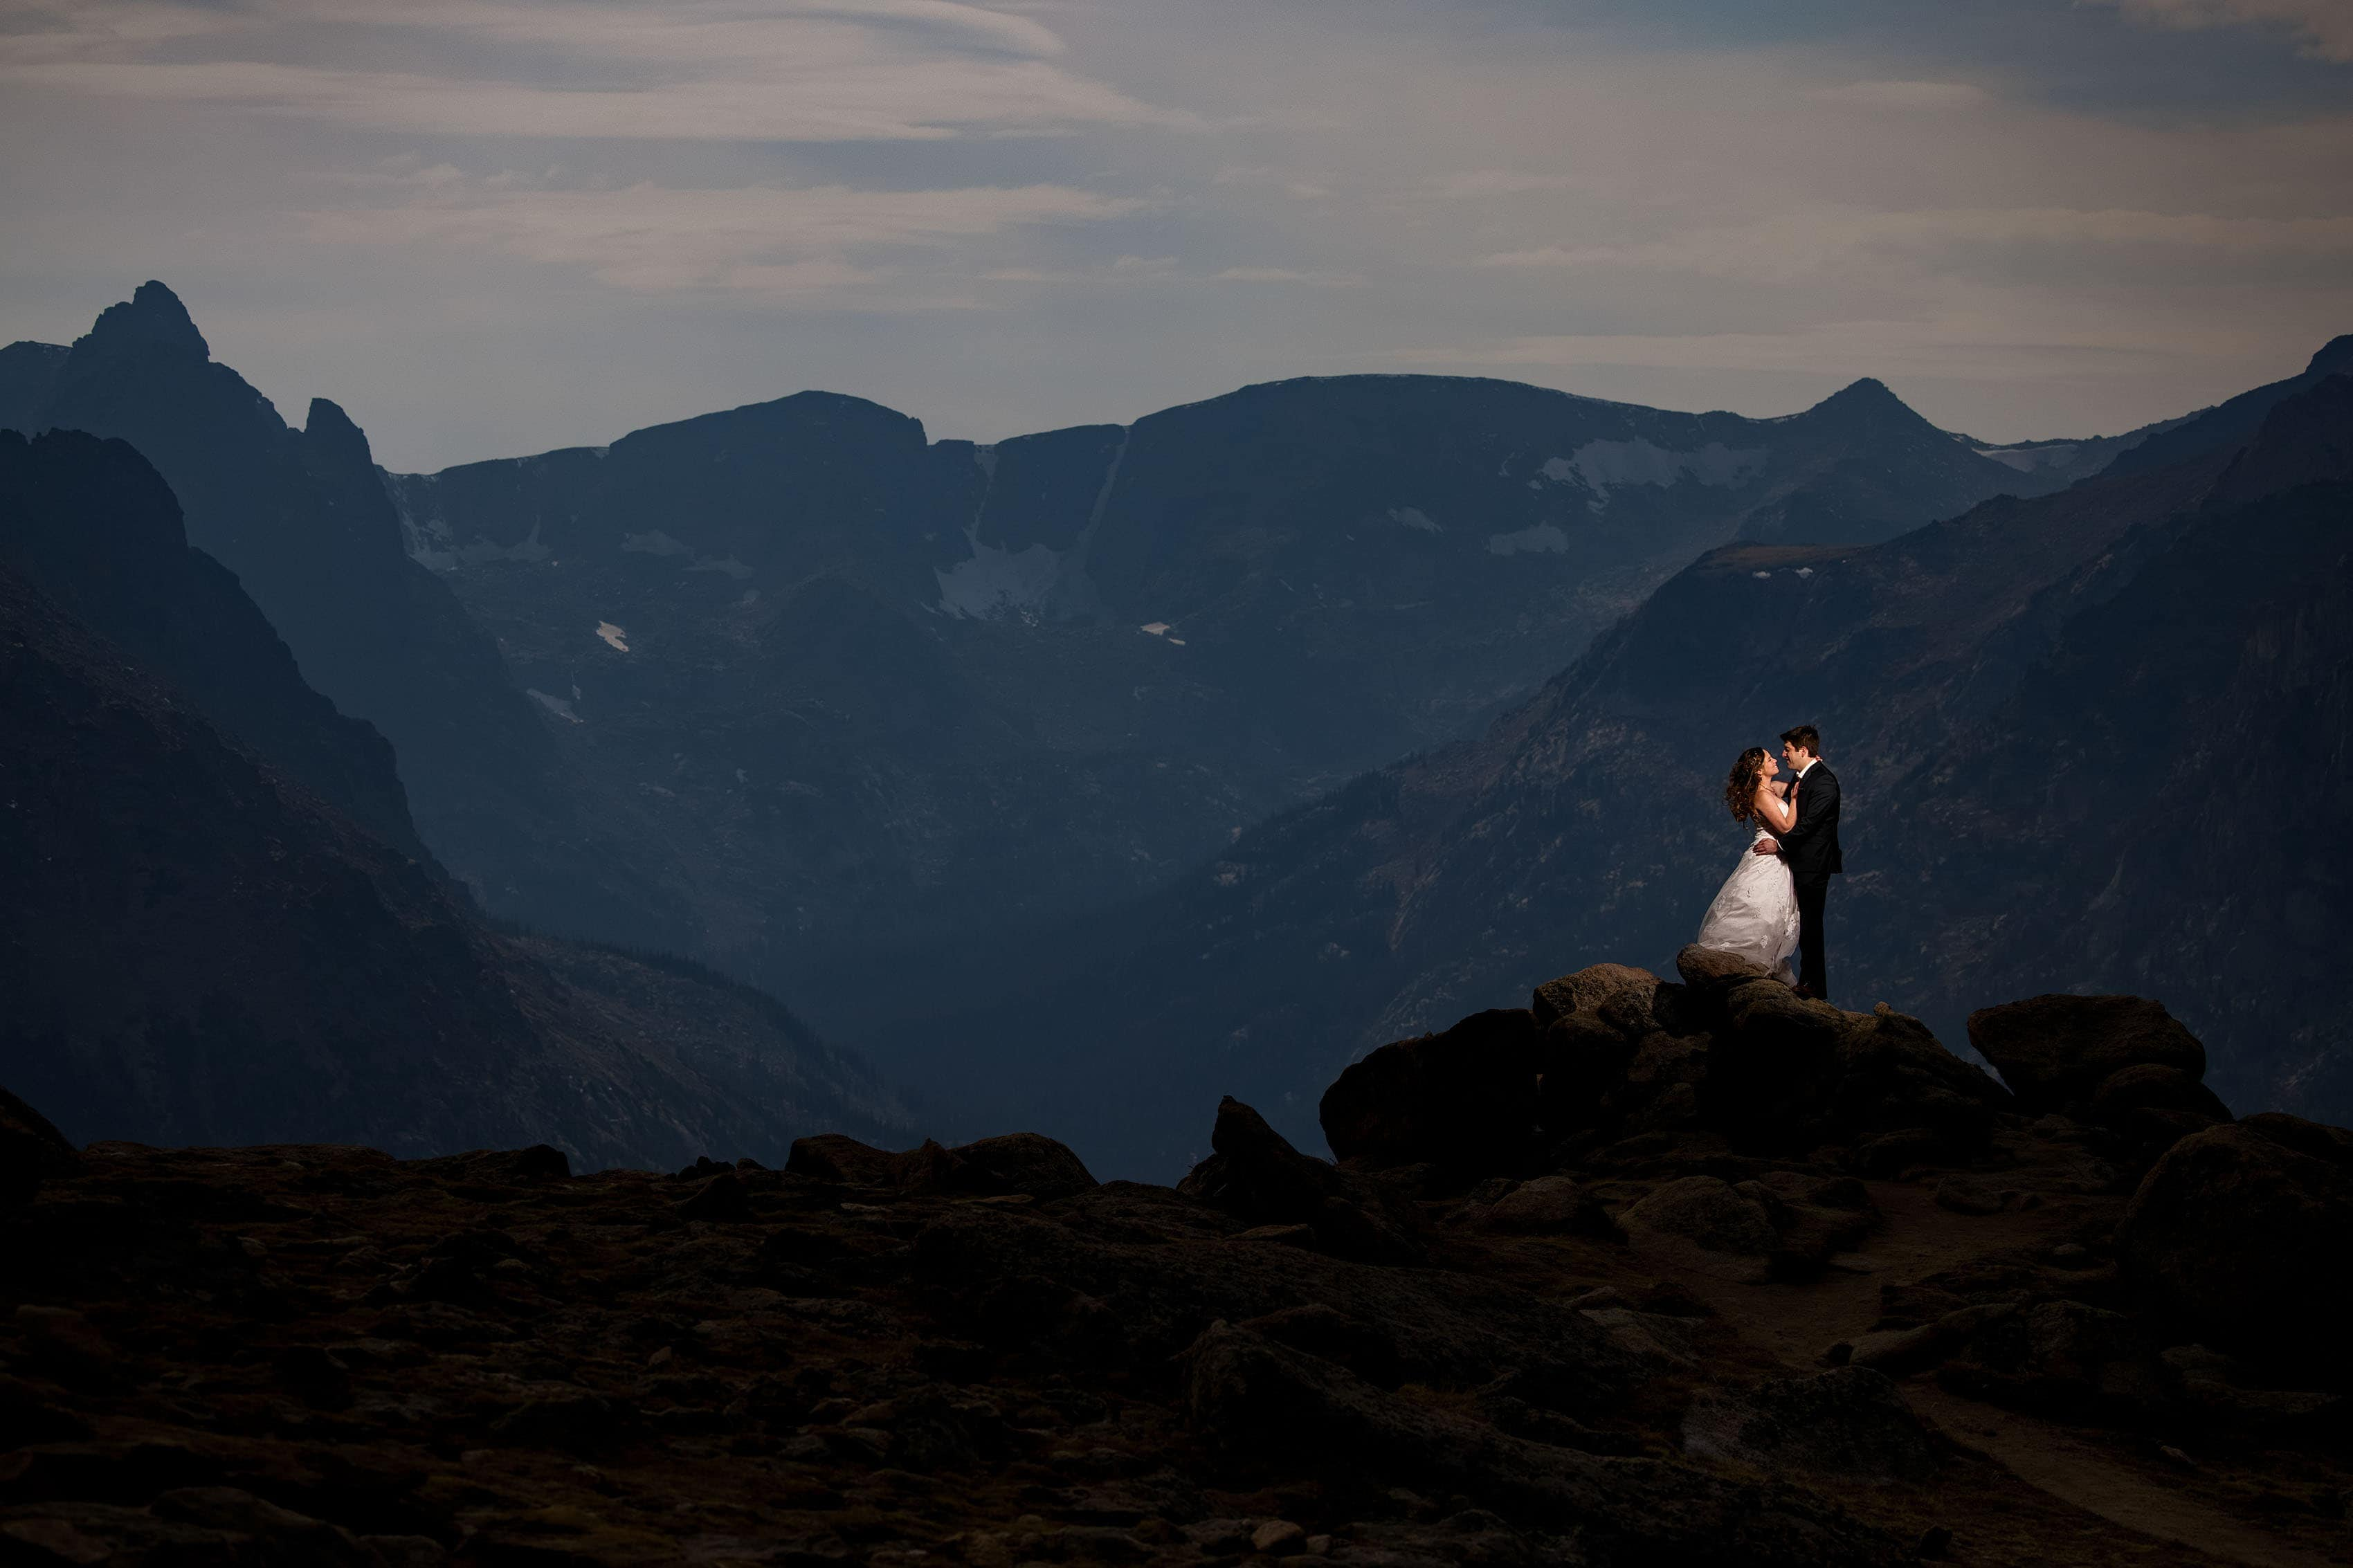 Chris and Madeline share a moment together atop Trail Ridge Road in Rocky Mountain National park